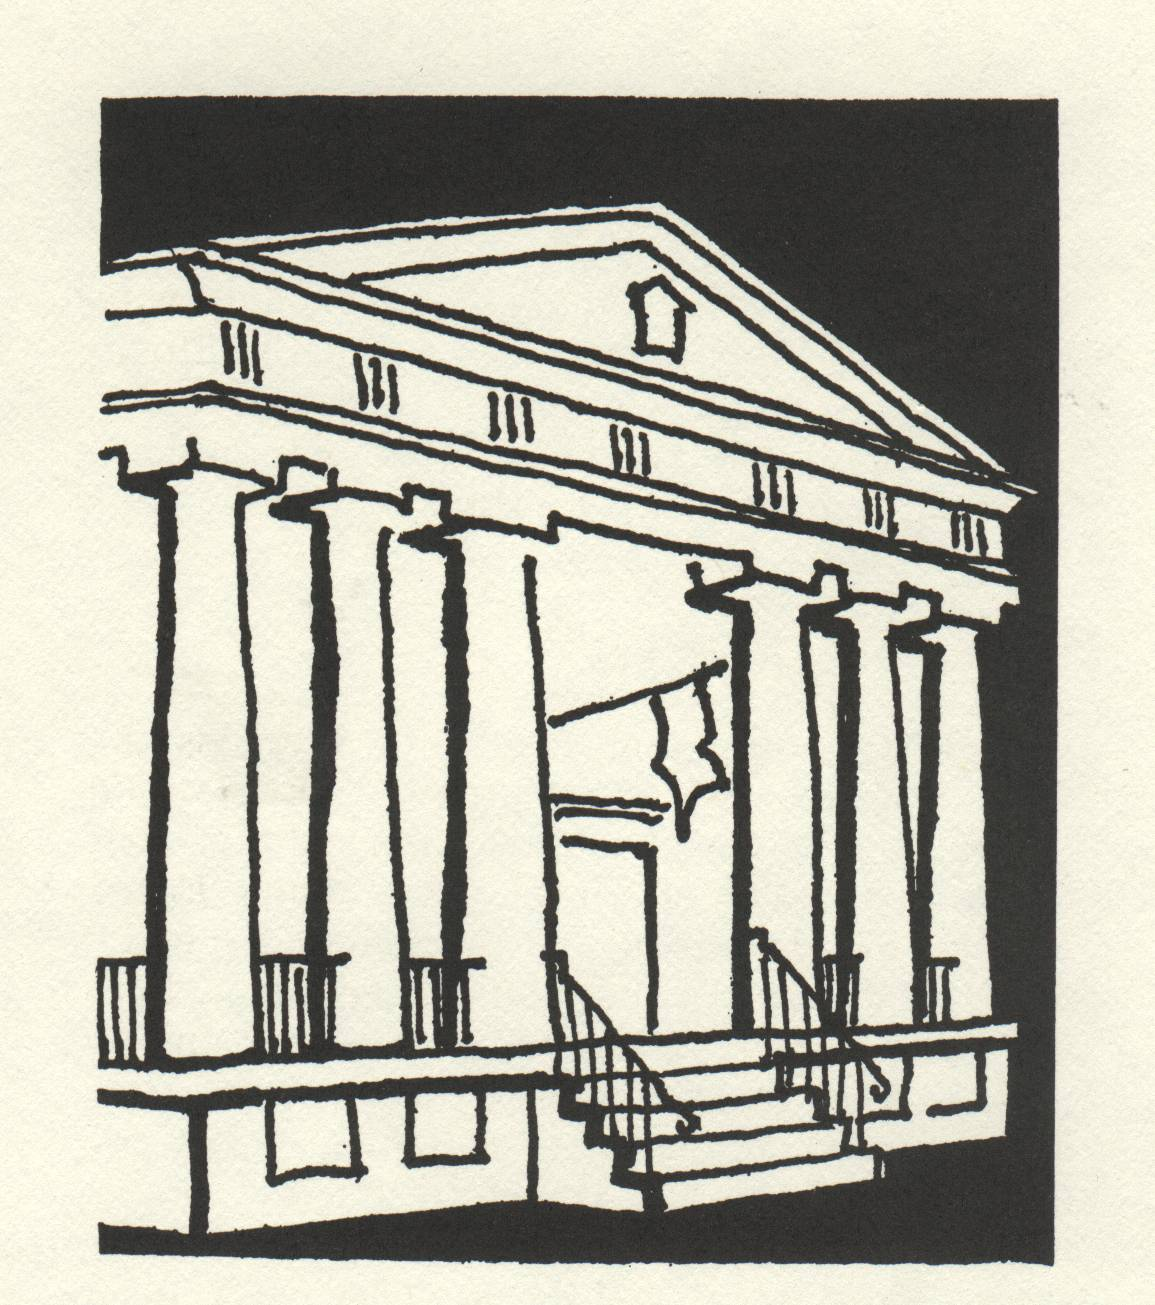 drawing of building with 6 giant columns